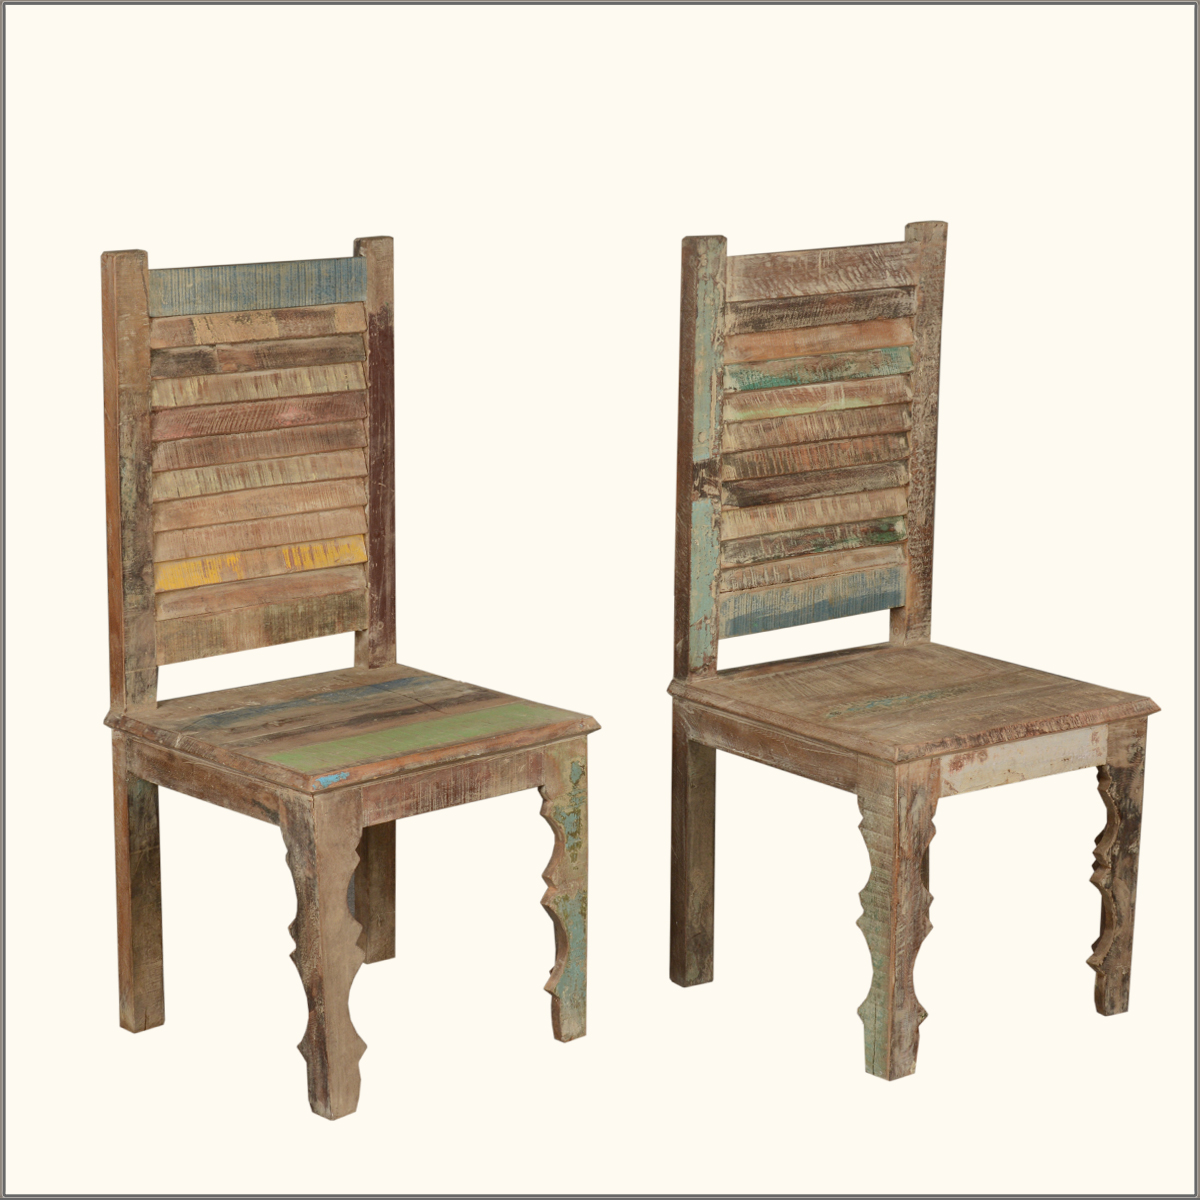 Rustic Distressed Reclaimed Wood Multi Color Kitchen Dining Room Chairs Set Of 2 Ebay